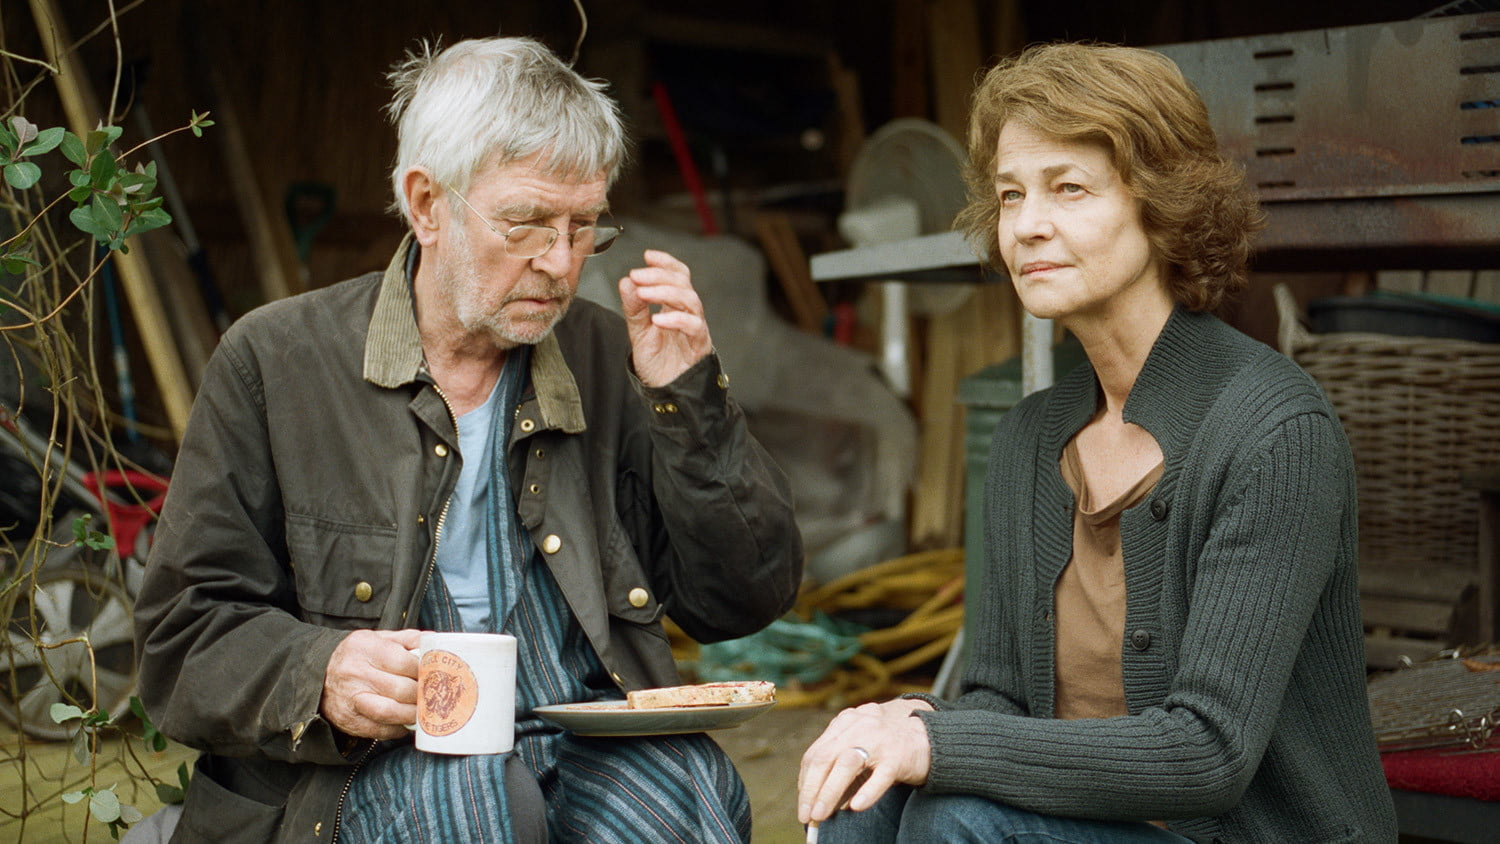 2016 oscar nominees movies past performances streaming charlotte rampling for 45 years